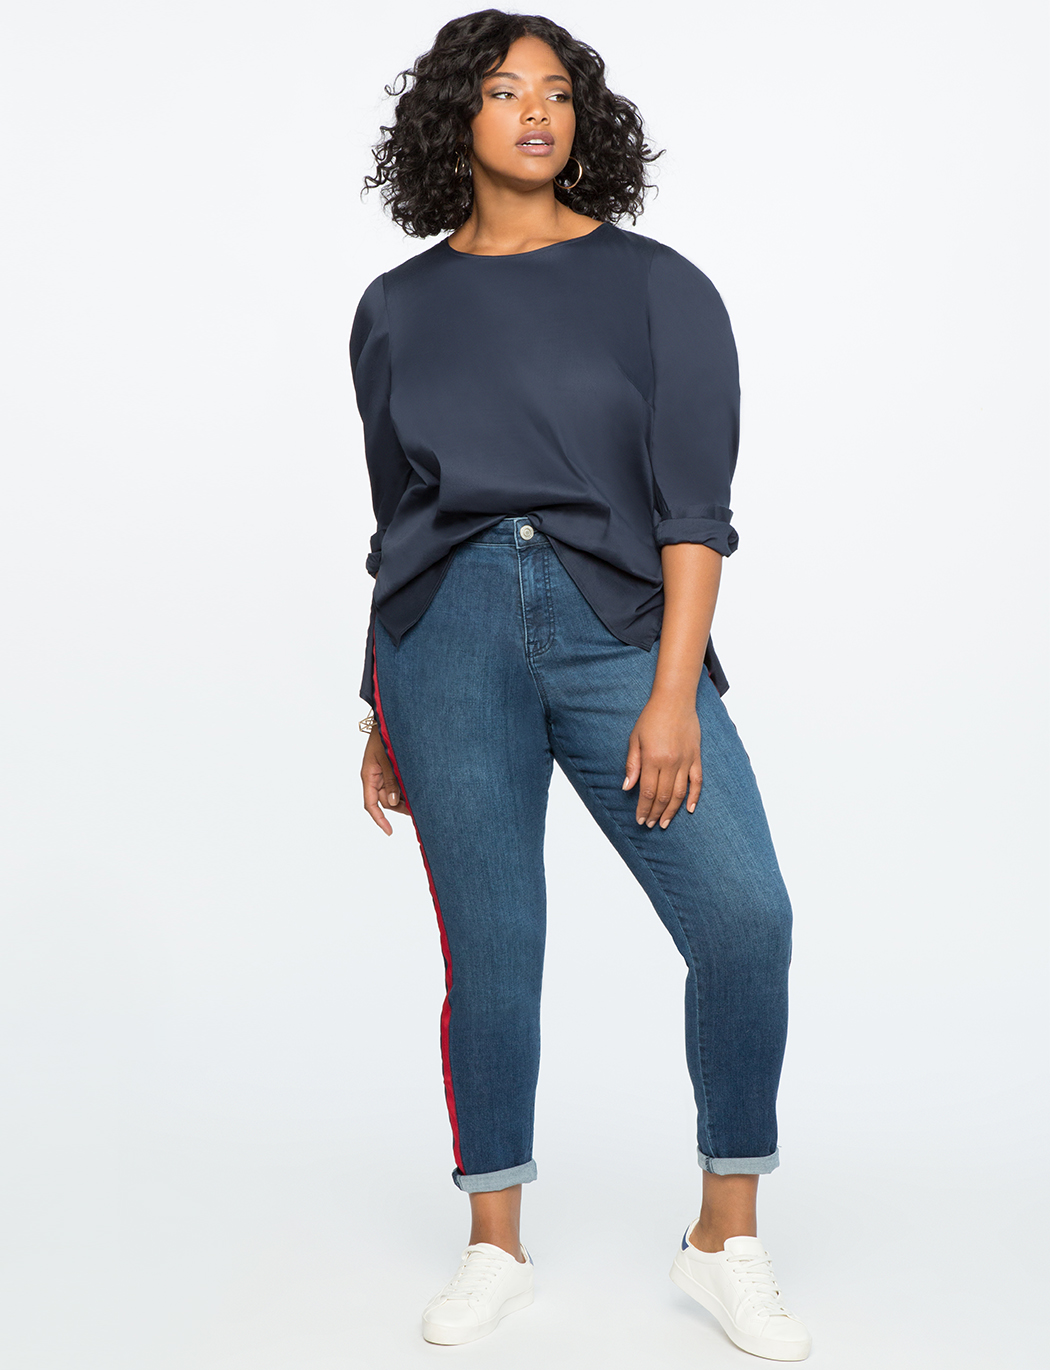 Pleated Puff Sleeve Top Blouse